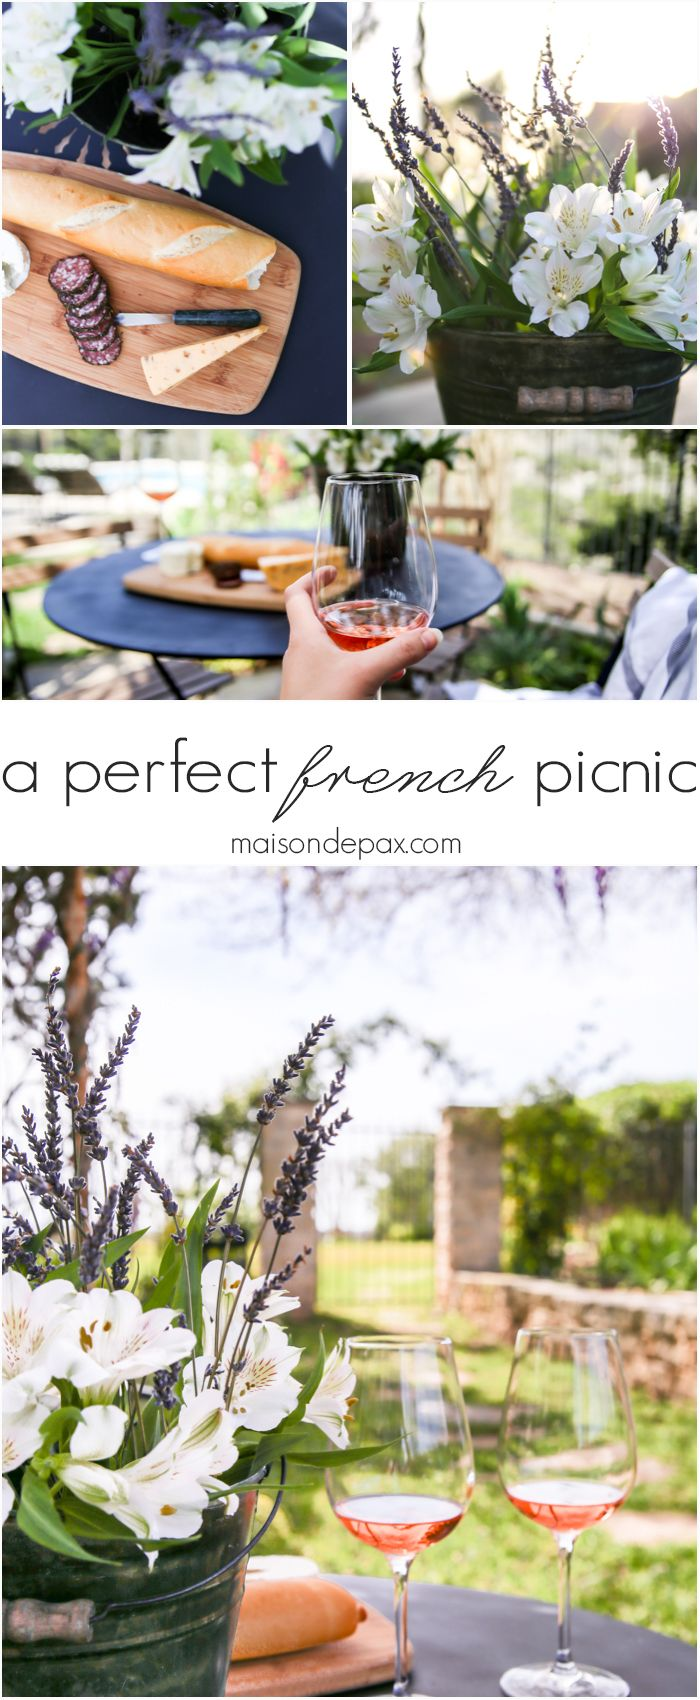 Simple rustic elegance! How to style and create a perfect French picnic | maisondepax.com